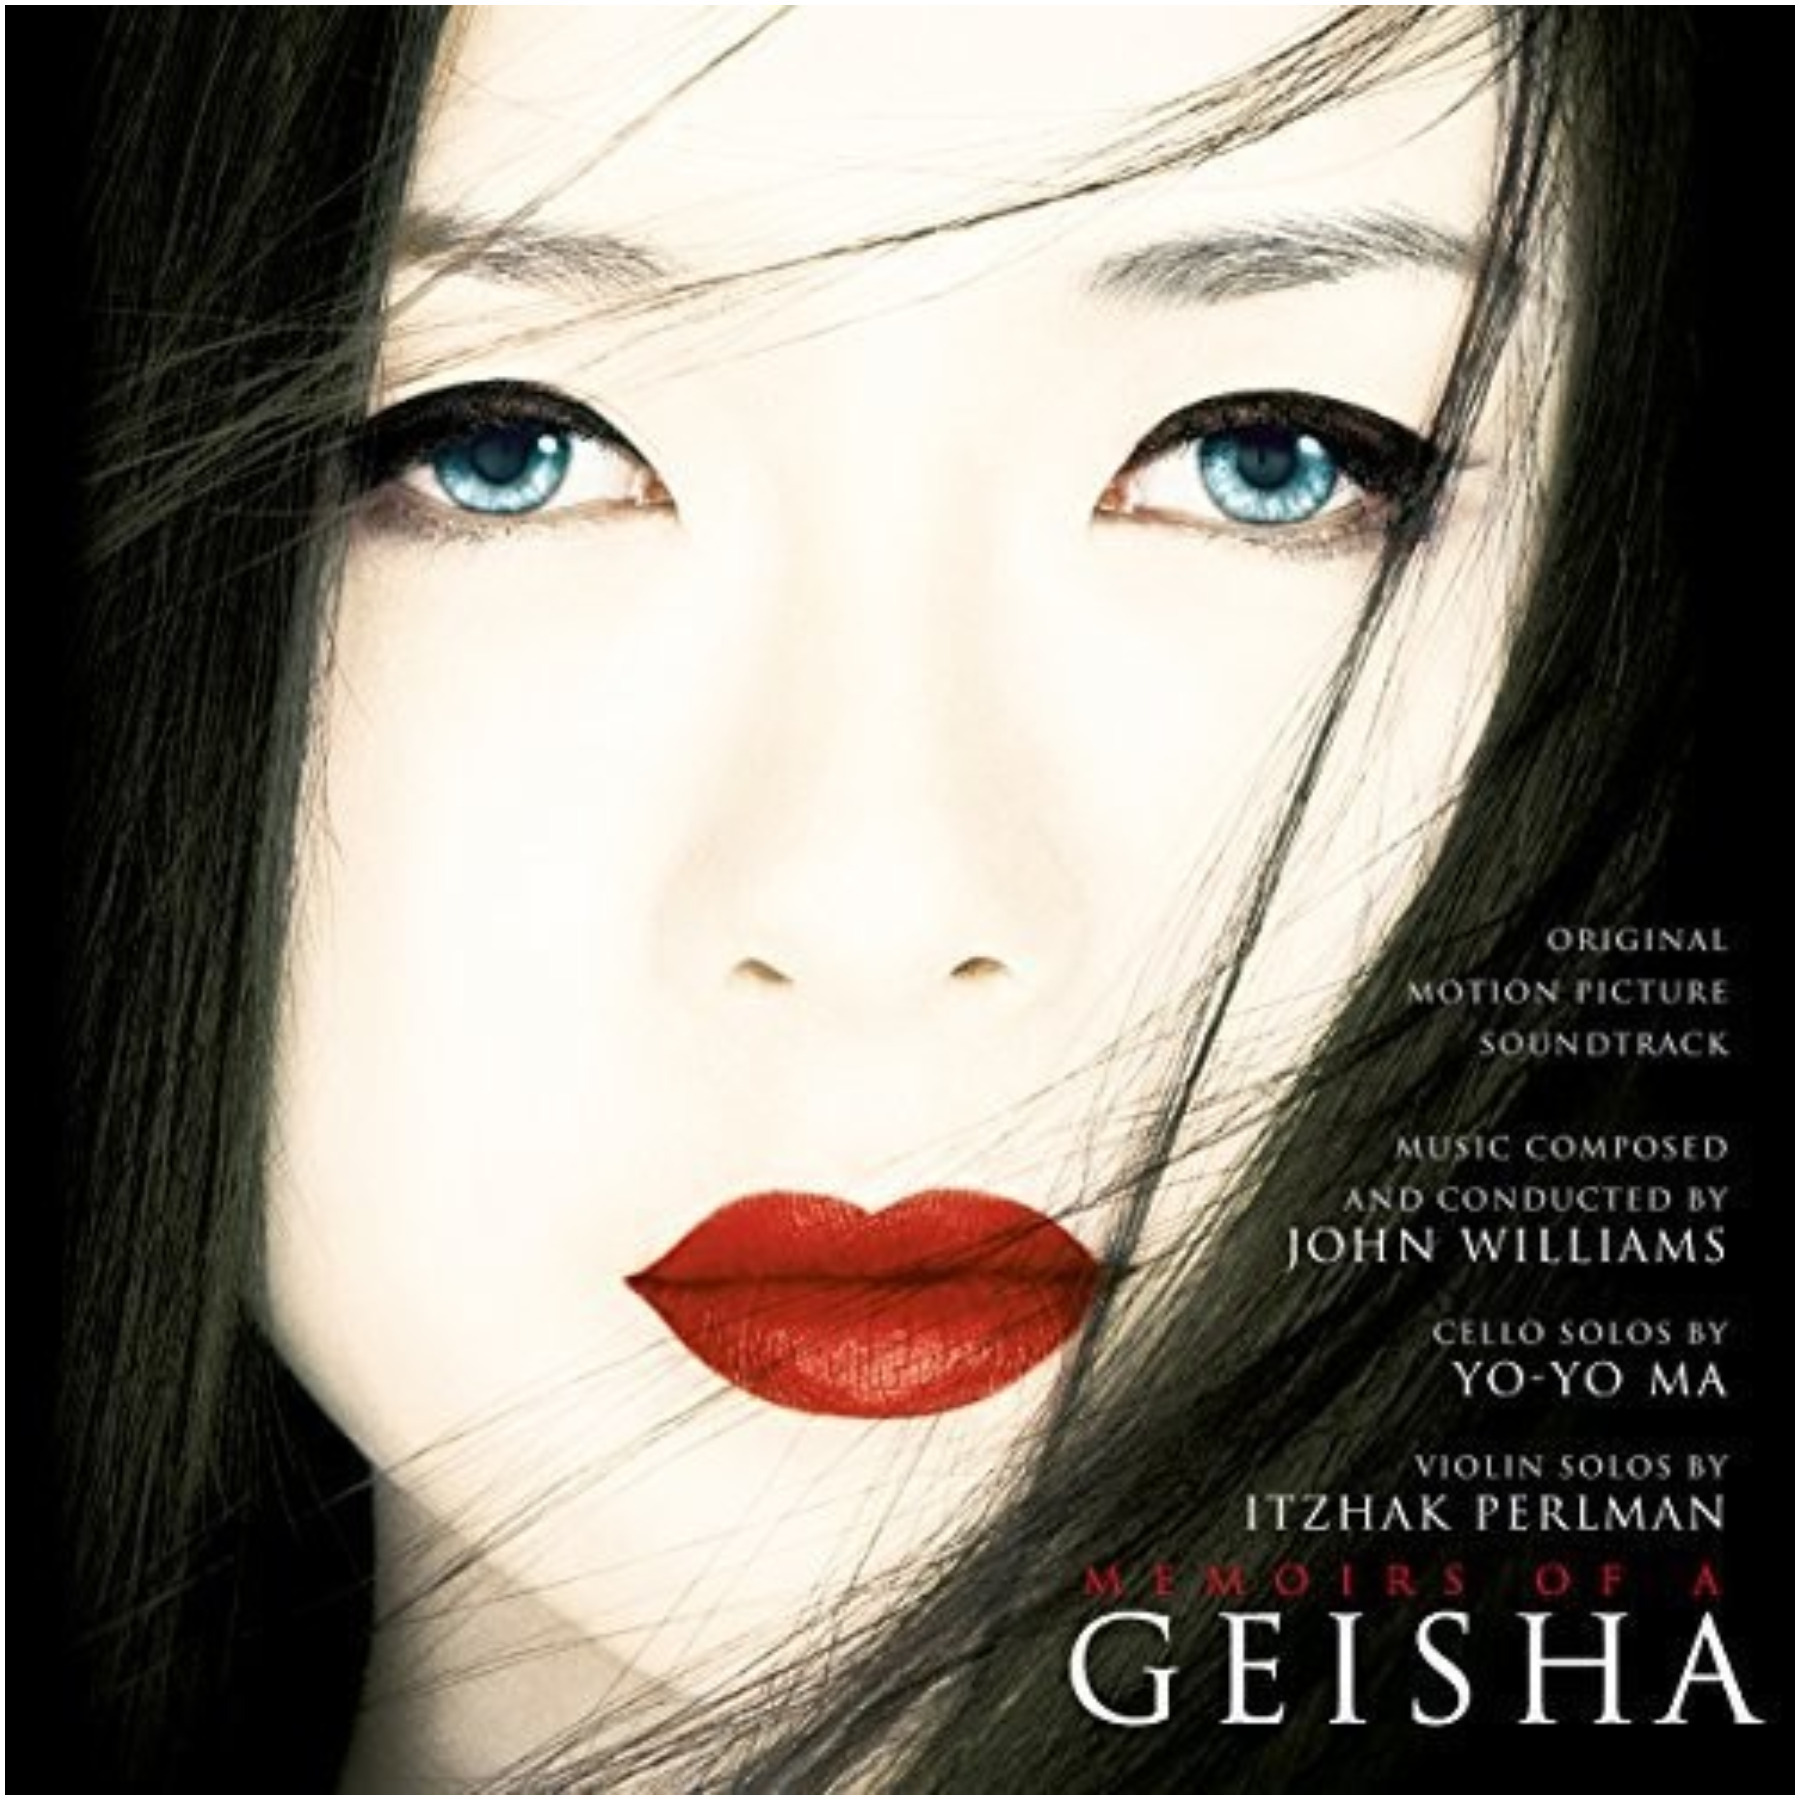 Memoirs Of A Geisha Memoirs Of A Geisha Vinyl 871926200054